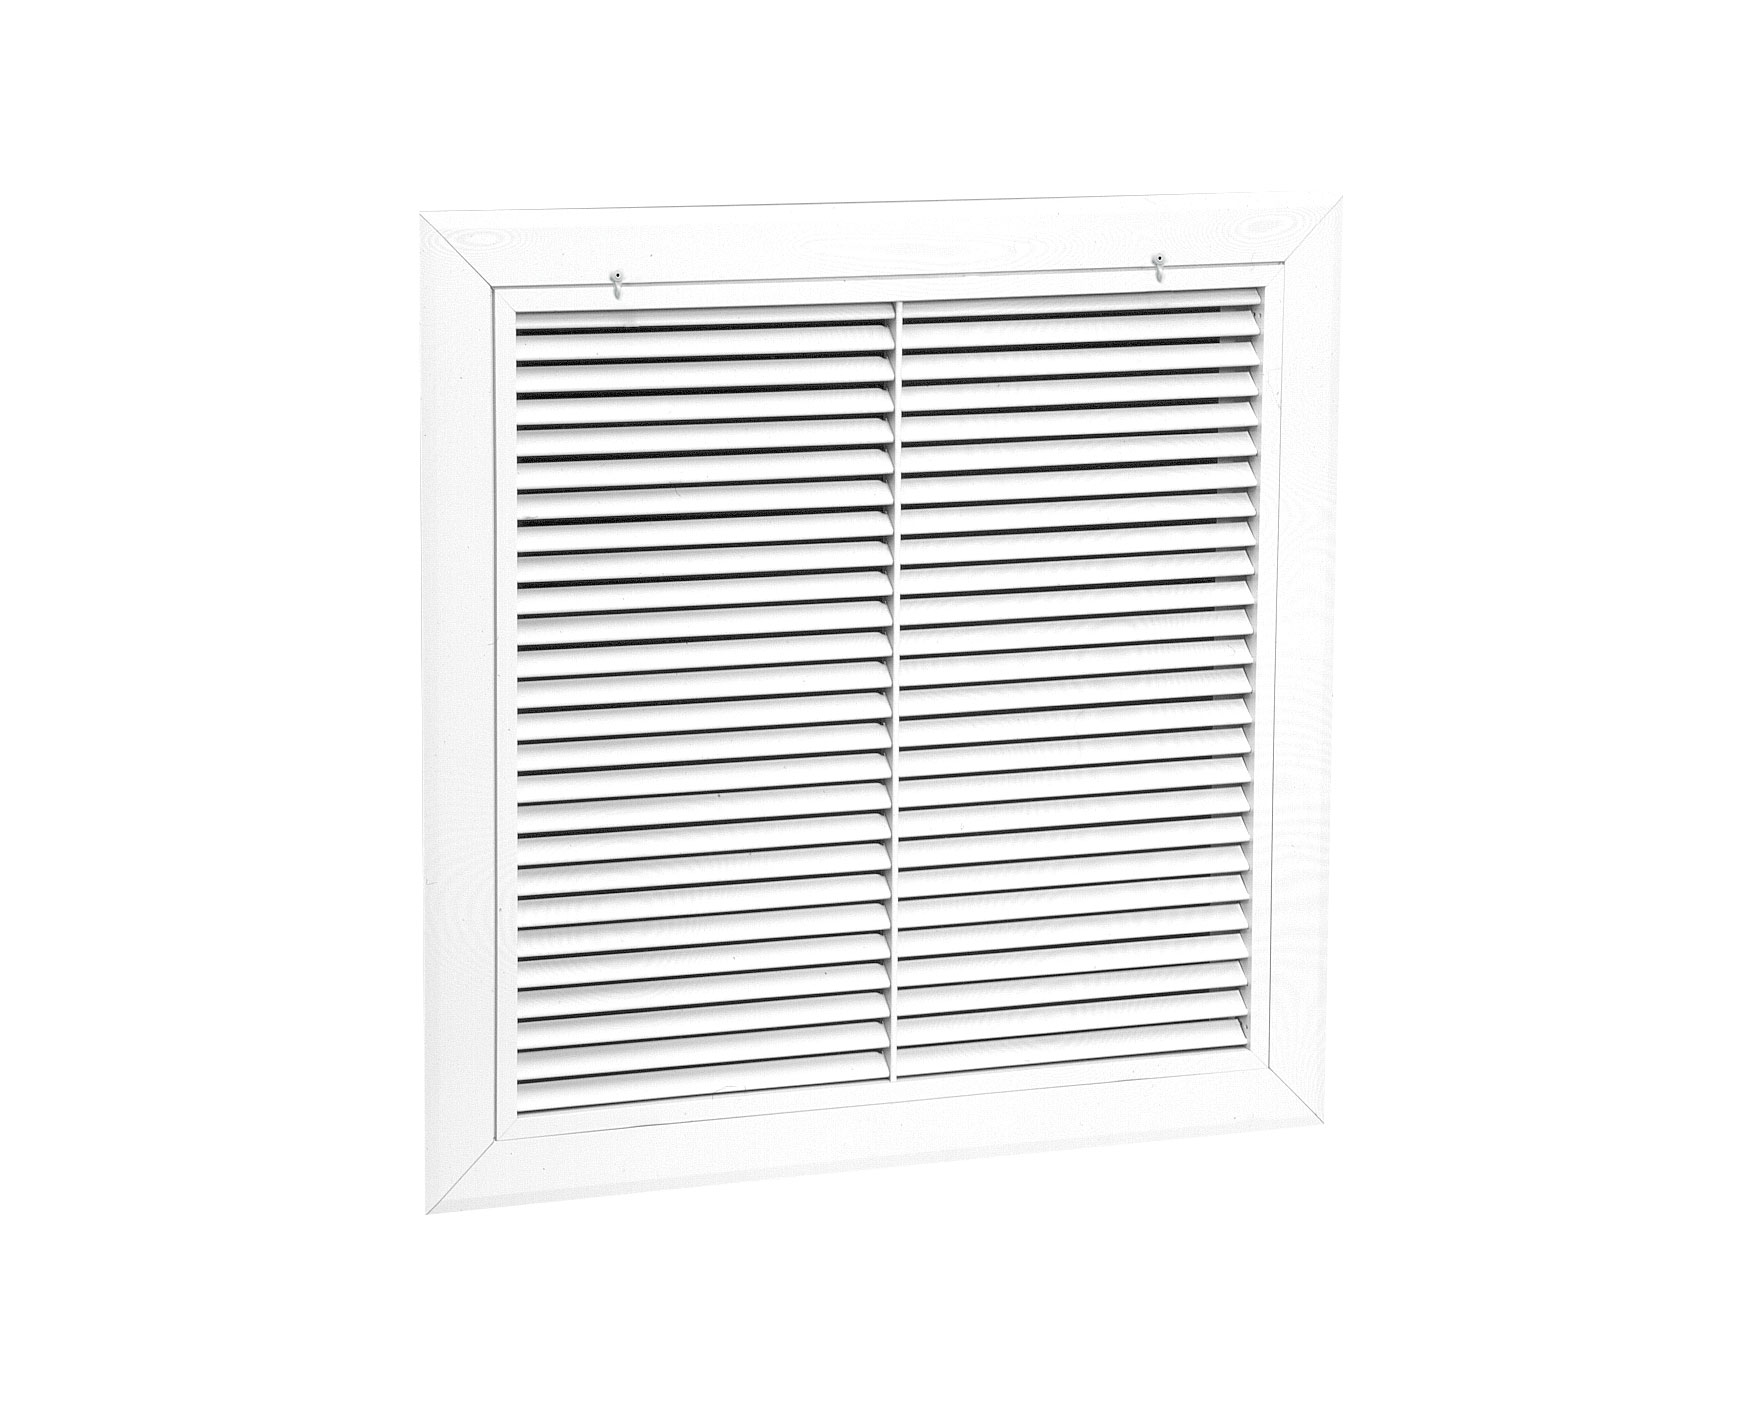 #404040 RHF45T Aluminum Fixed Bar Return Air Filter Grille 45  Highly Rated 2319 Drop Ceiling Return Air Grille wallpapers with 1762x1406 px on helpvideos.info - Air Conditioners, Air Coolers and more